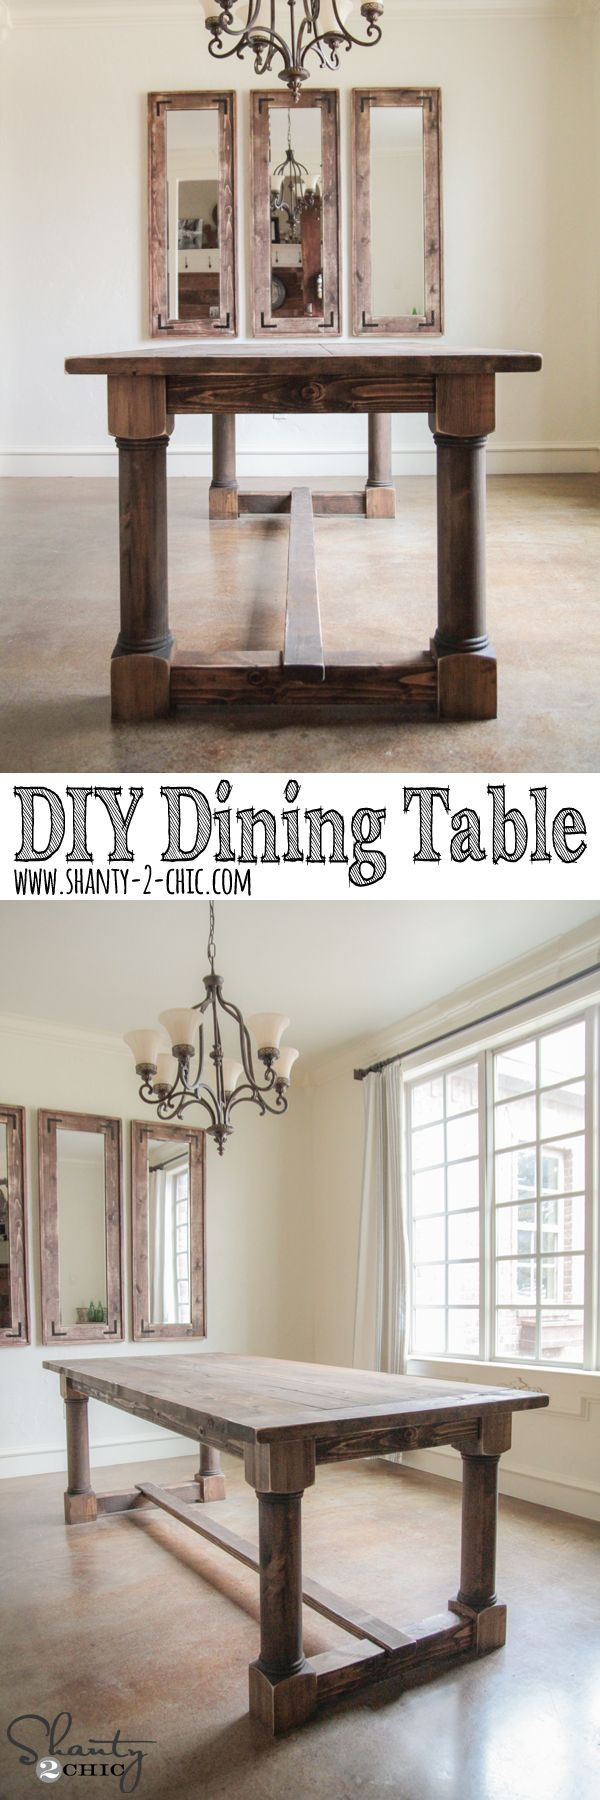 Love This DIY Dining Table! Free Plans And Tutorial At Www.shanty 2